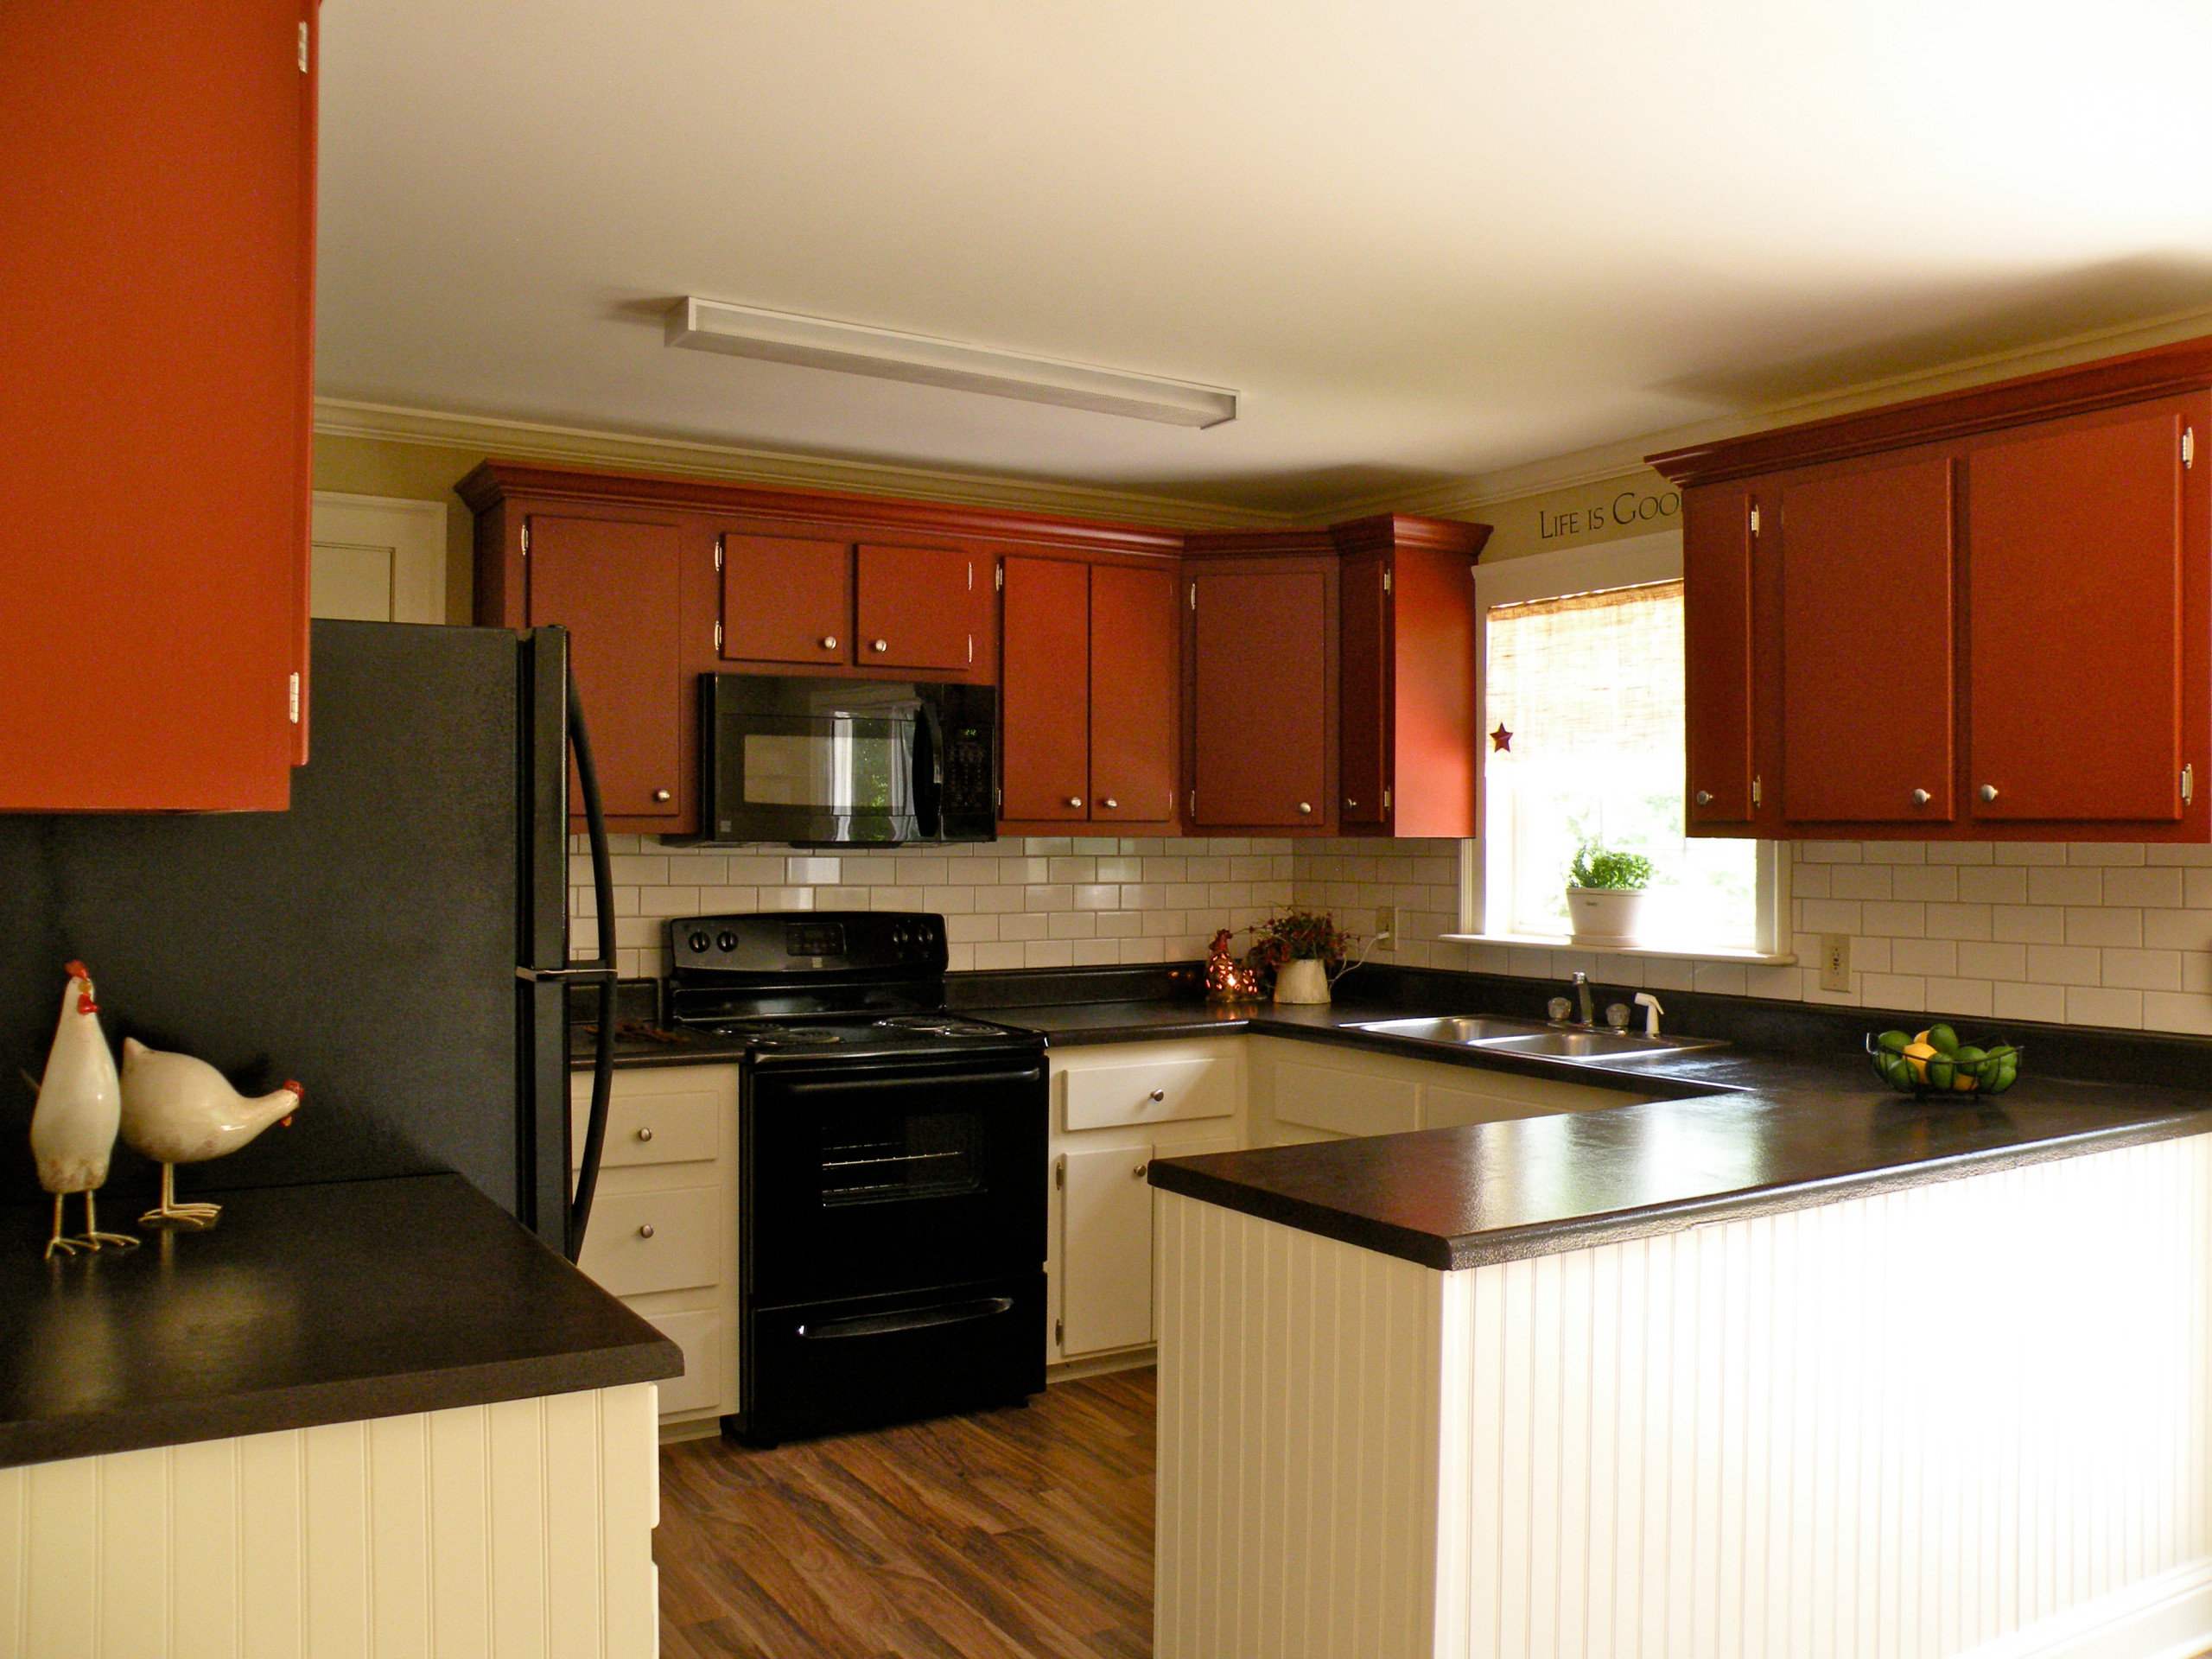 Kitchen on a shoestring budget